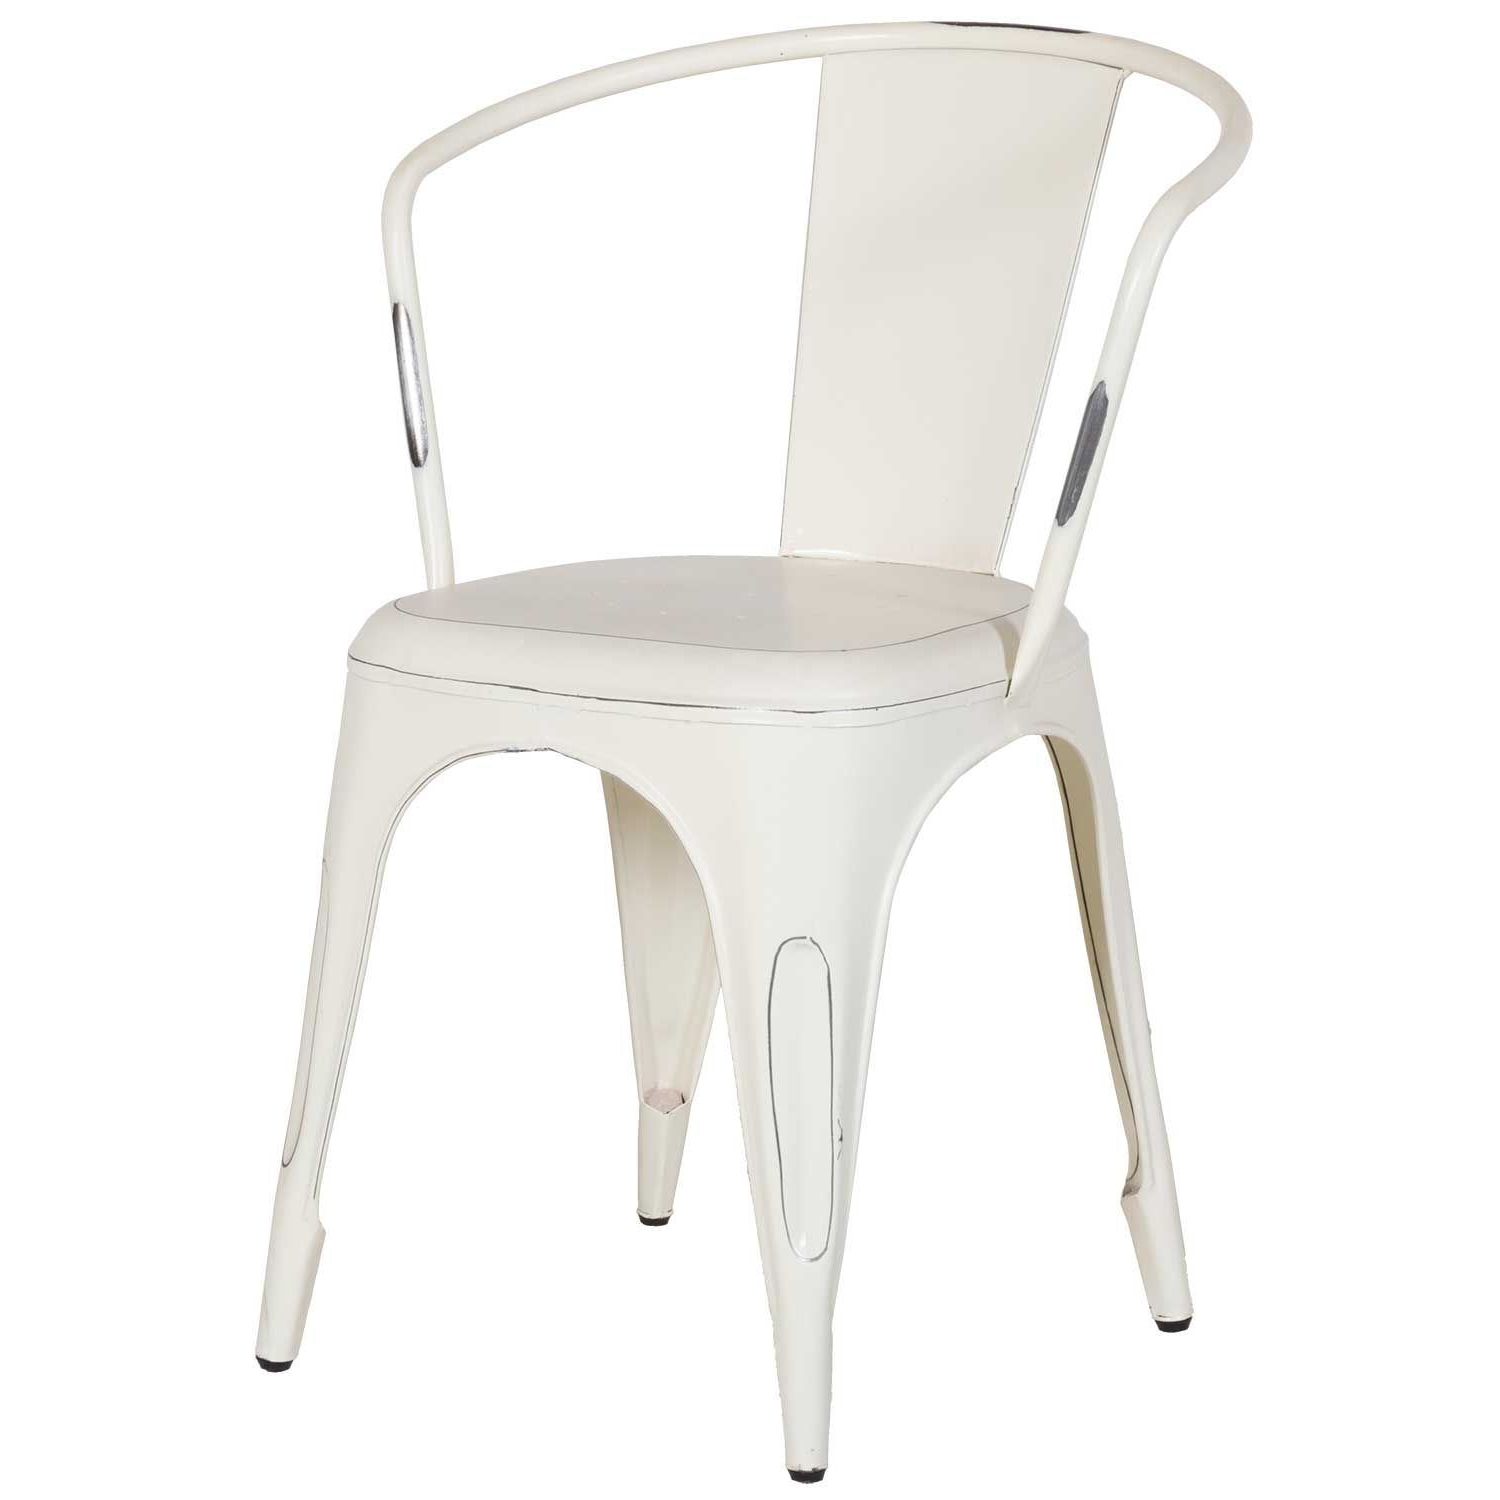 Stylish Dining Chairs Intended For Fashionable Vintage White Retro Cafe Arm Chair Sie A1042W (View 11 of 25)